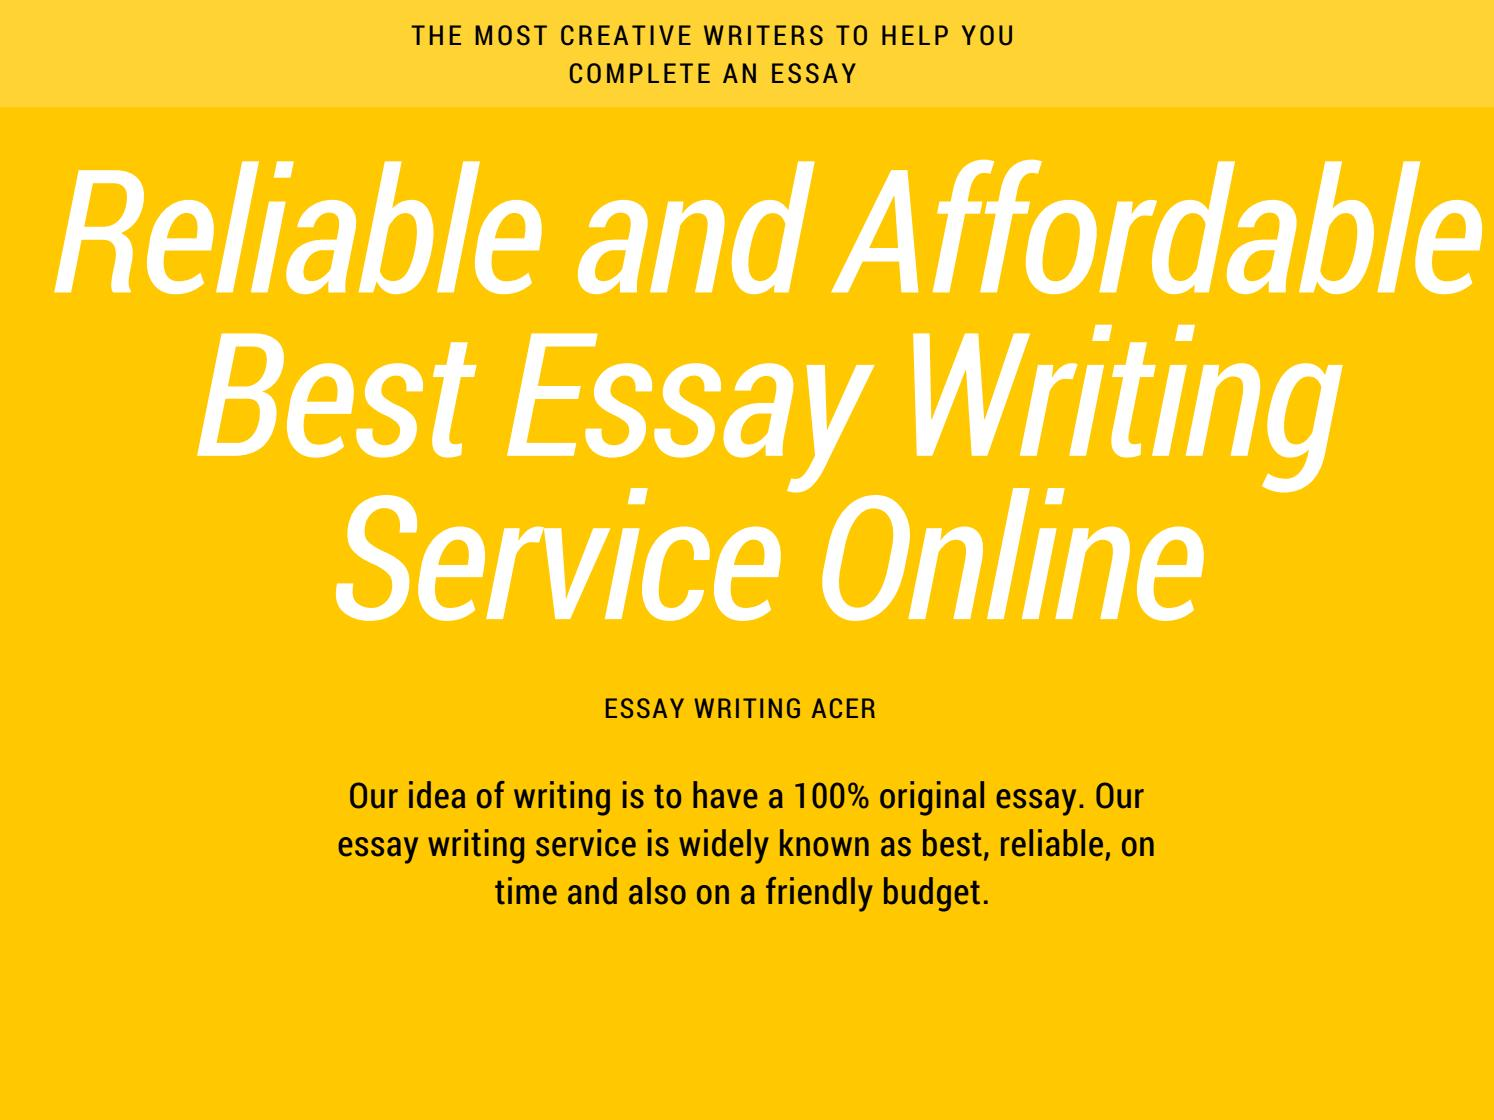 Why Is It So Hard to Get Decent Writing Assistance?